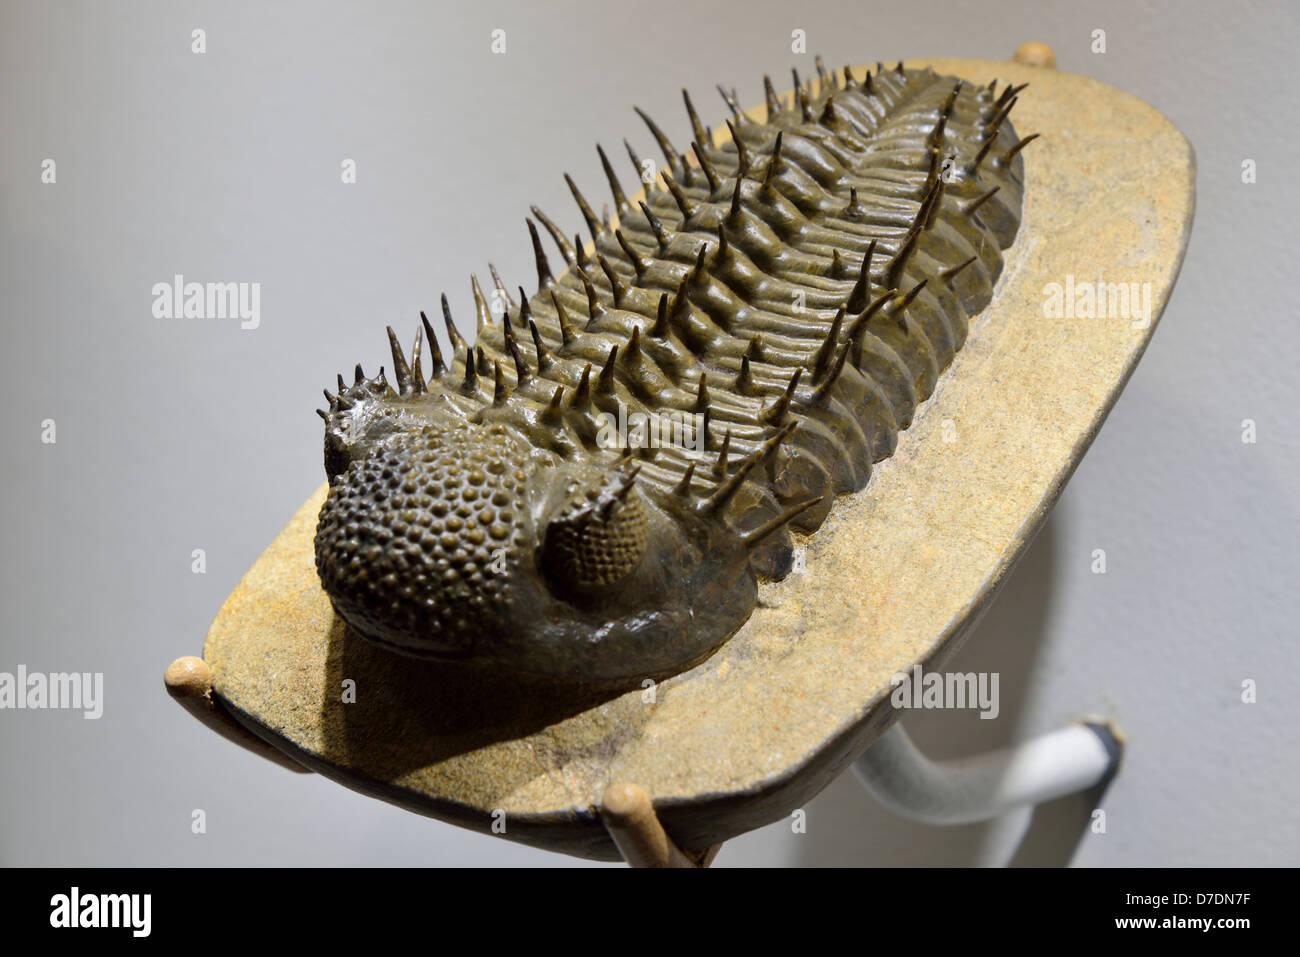 Fossil trilobite Drotops armatus with intrigued spines. Devonian age. - Stock Image